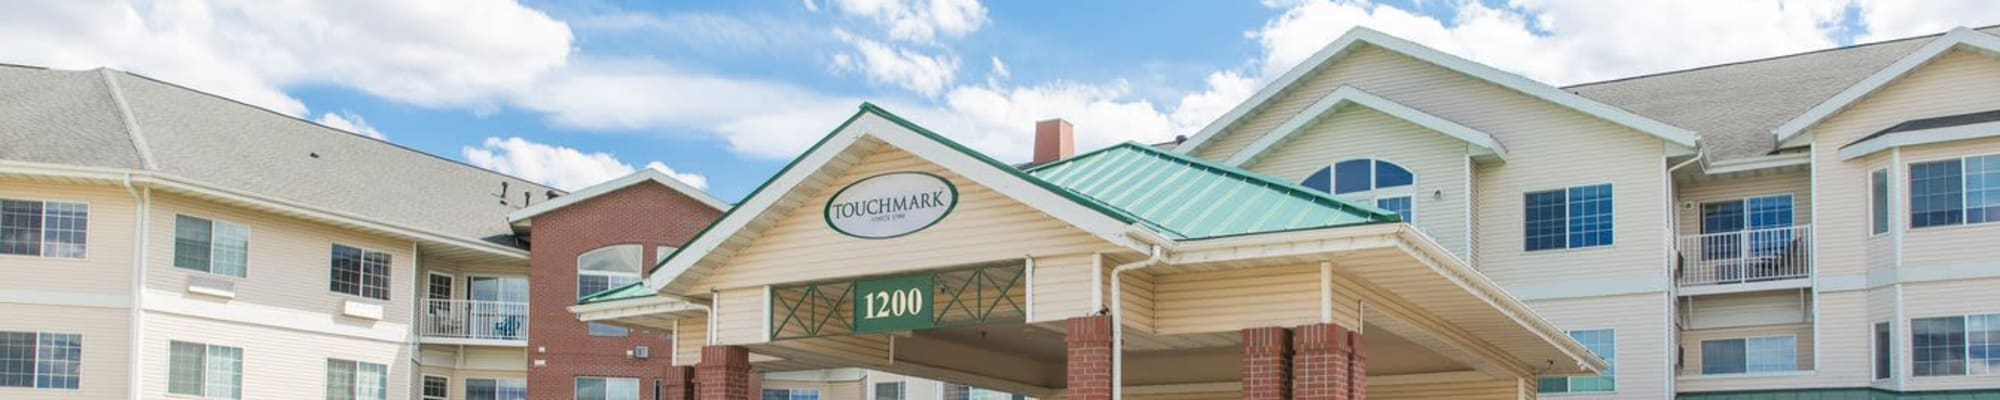 Contact Touchmark at Harwood Groves in Fargo, North Dakota